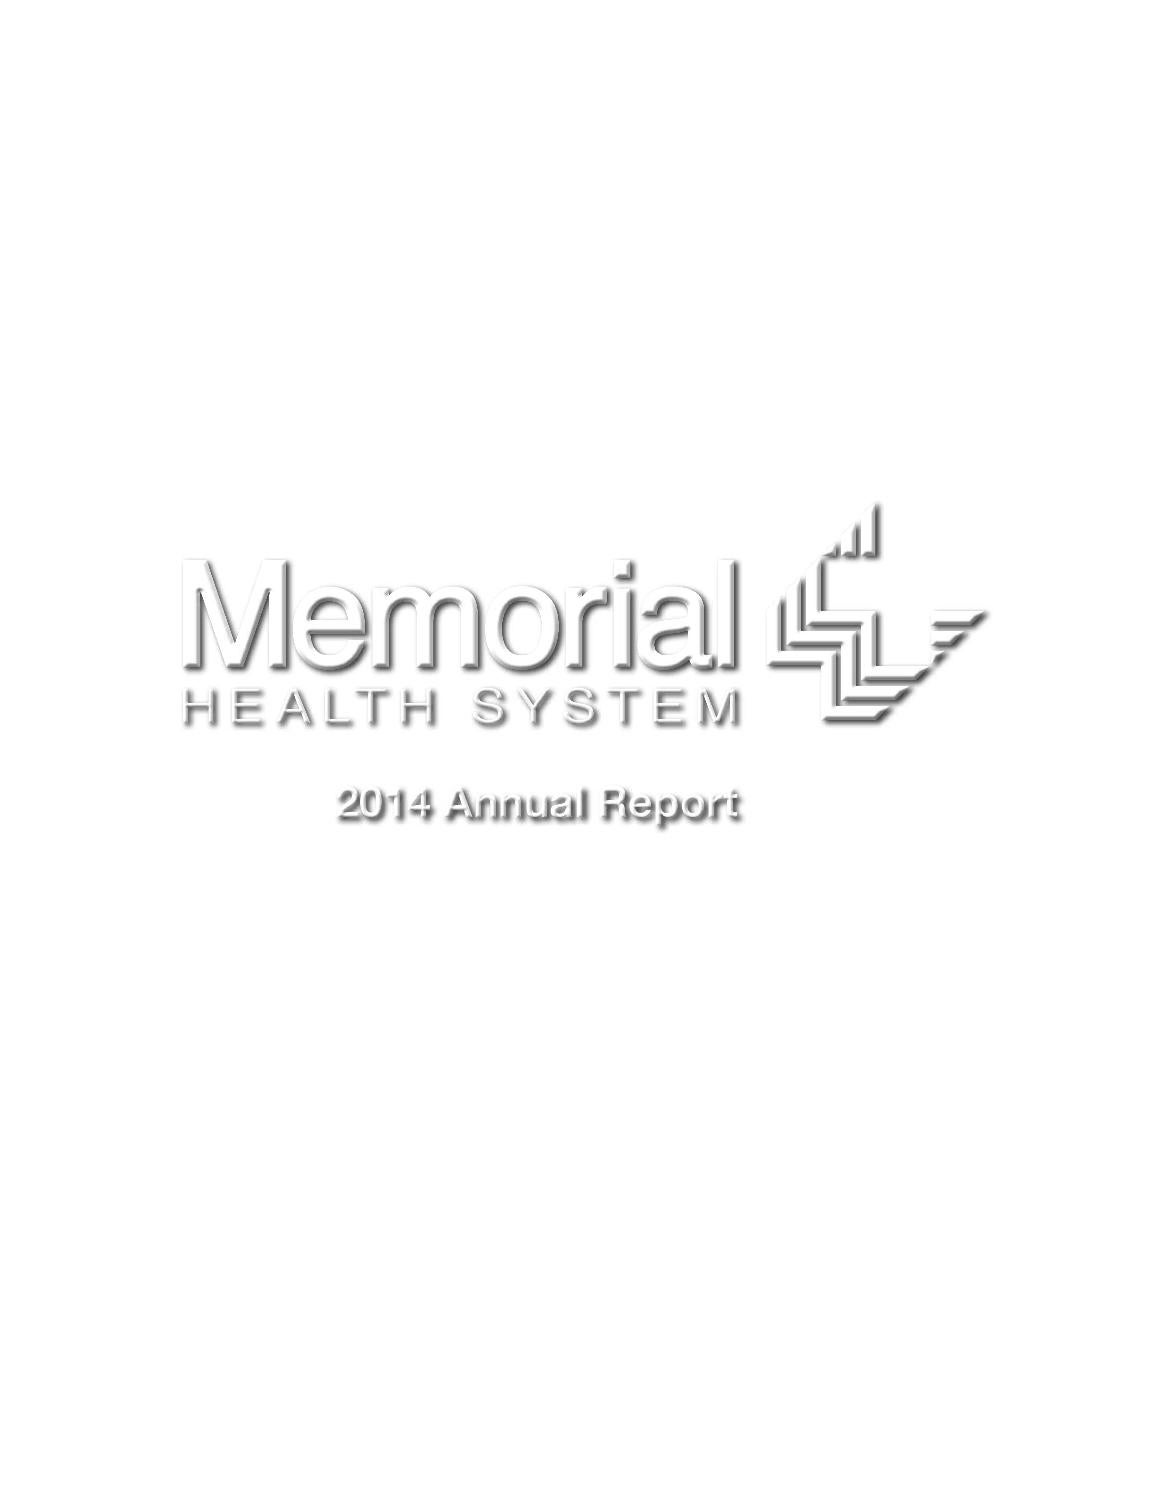 Memorial Health System 2014 Annual Report By Memorial Health